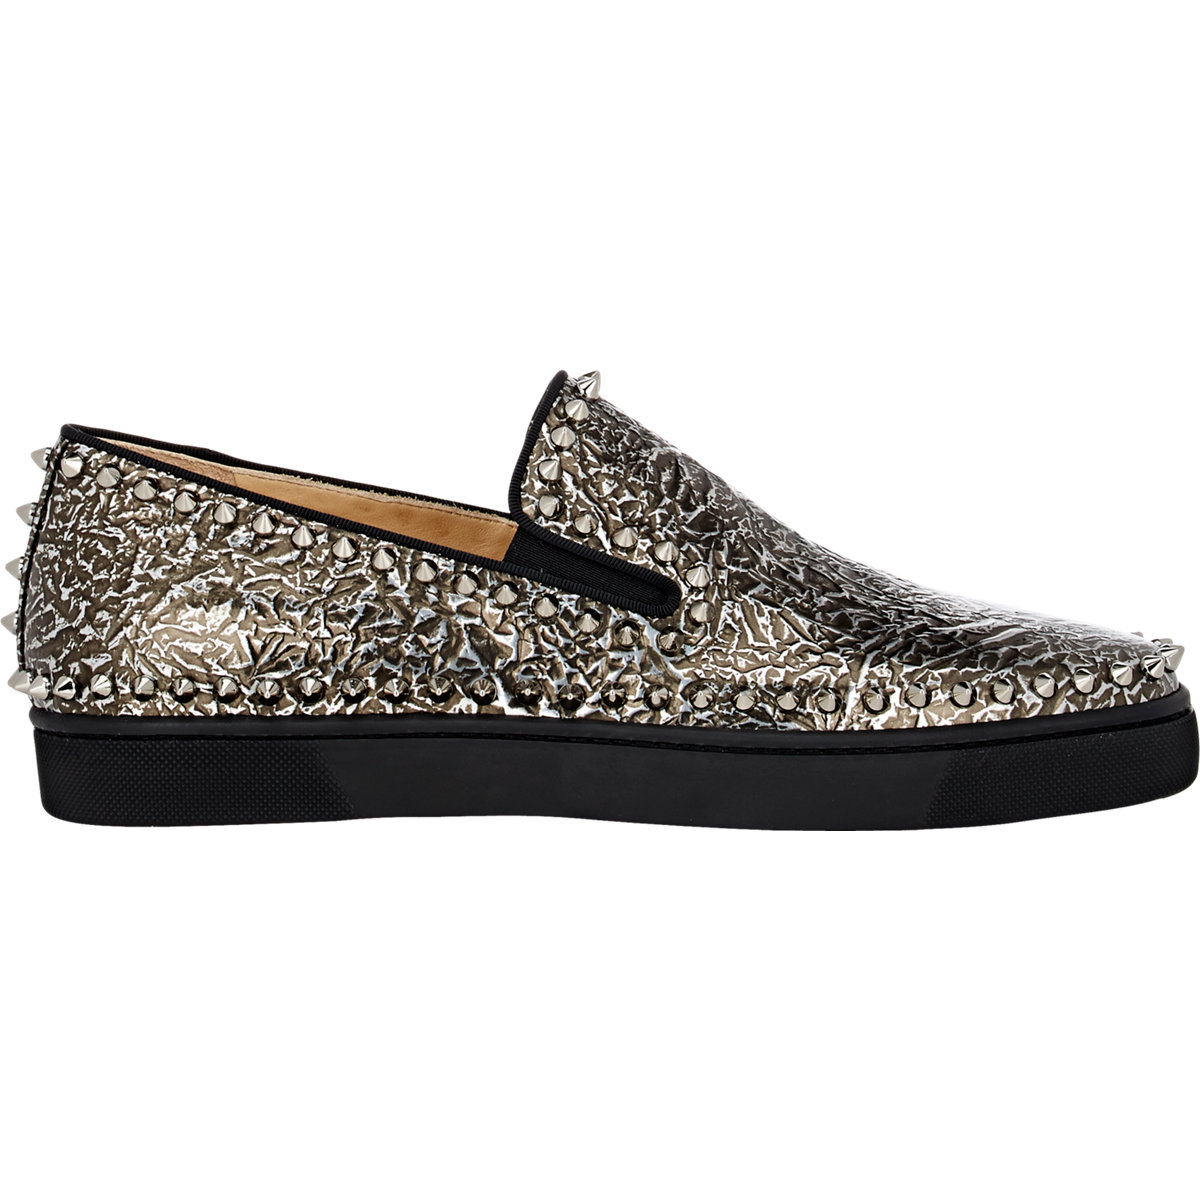 mens red bottom shoes price - christian louboutin leather round-toe slip-on Pik Boat sneakers ...